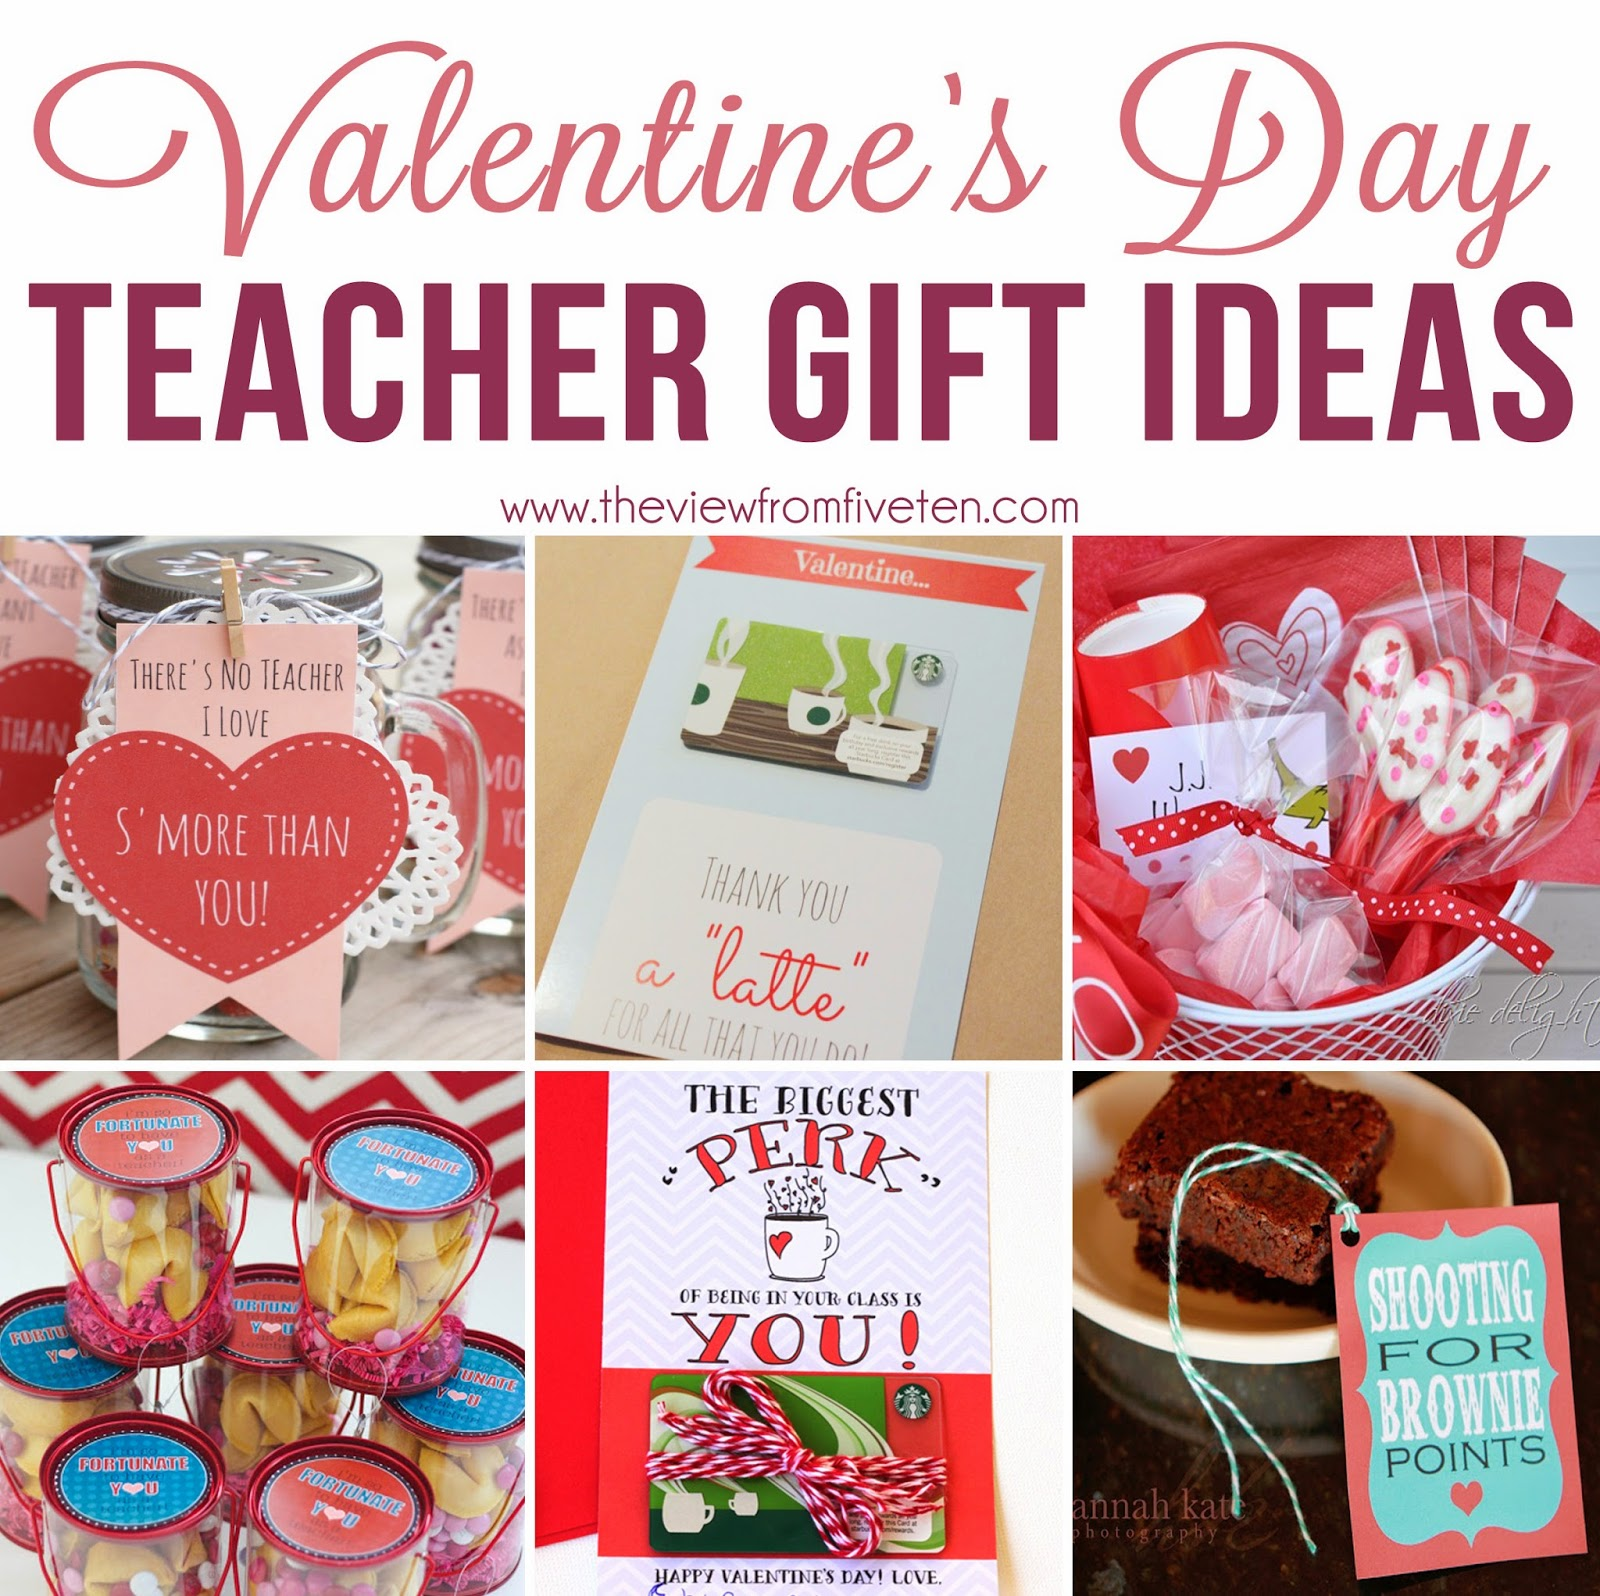 Best Valentine's Day Gifts Ideas for Teachers 2020 On A Budget